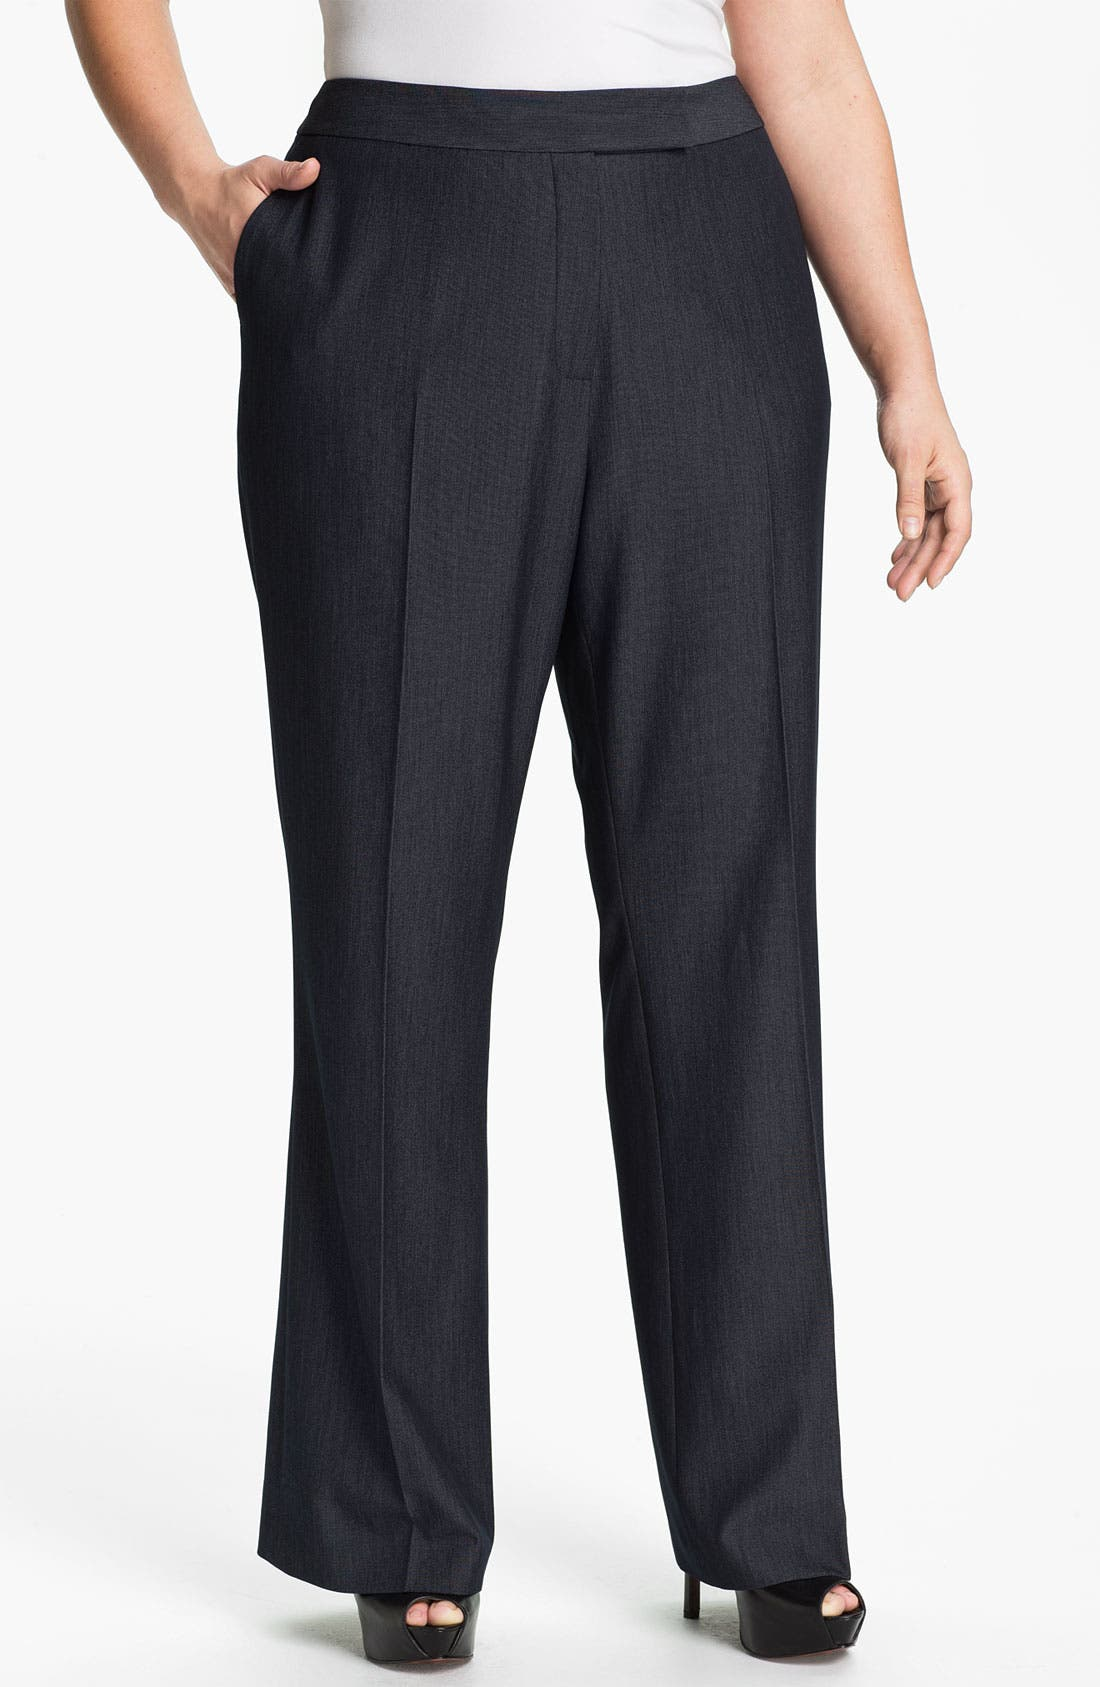 Main Image - Tahari Woman 'Merlin' Pants (Plus)